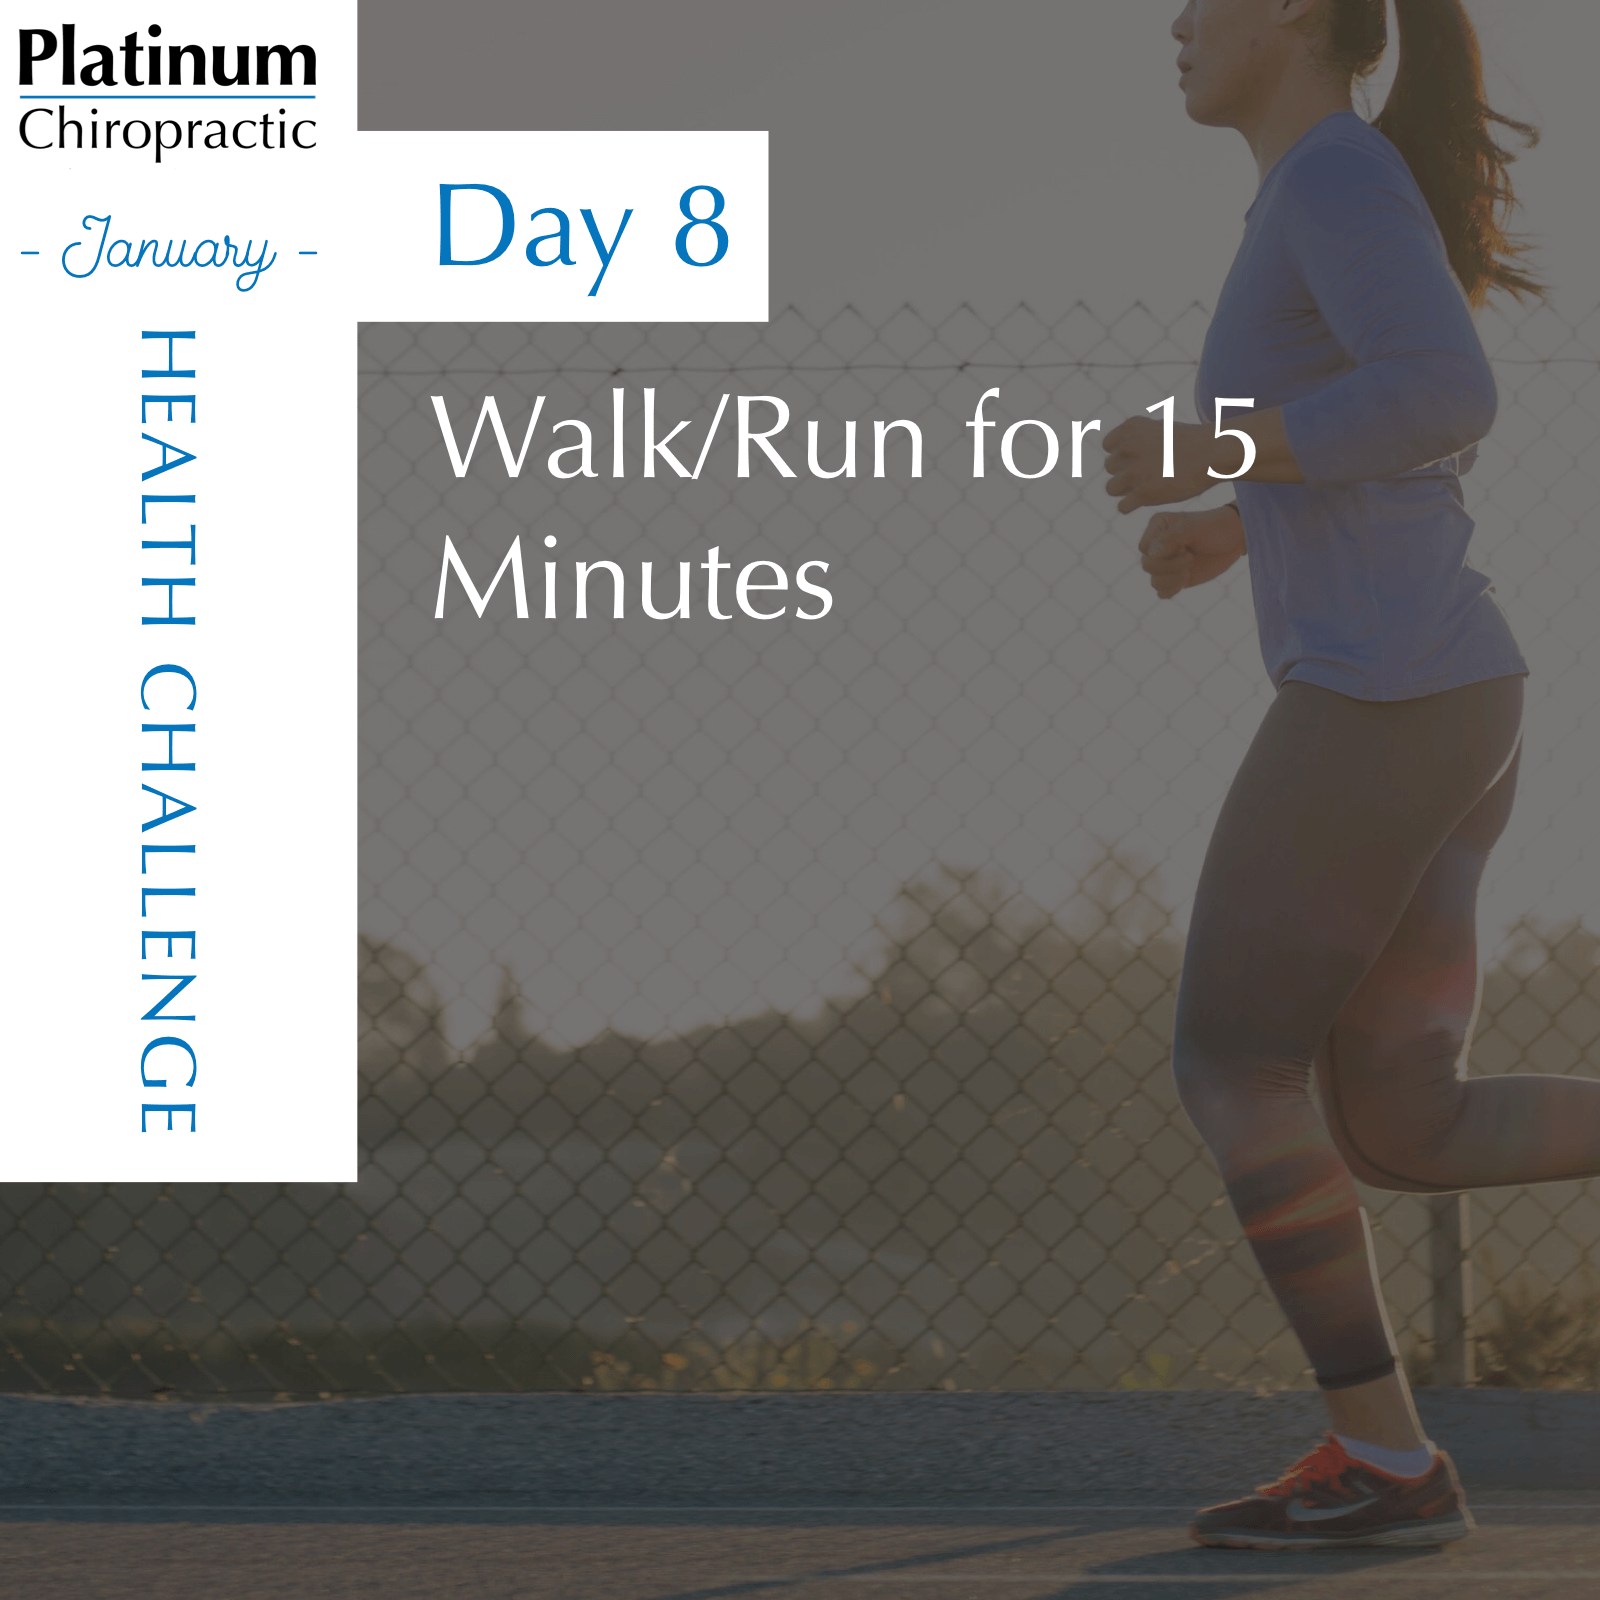 Walking/Running is a great way to get some exercise in, and its free!